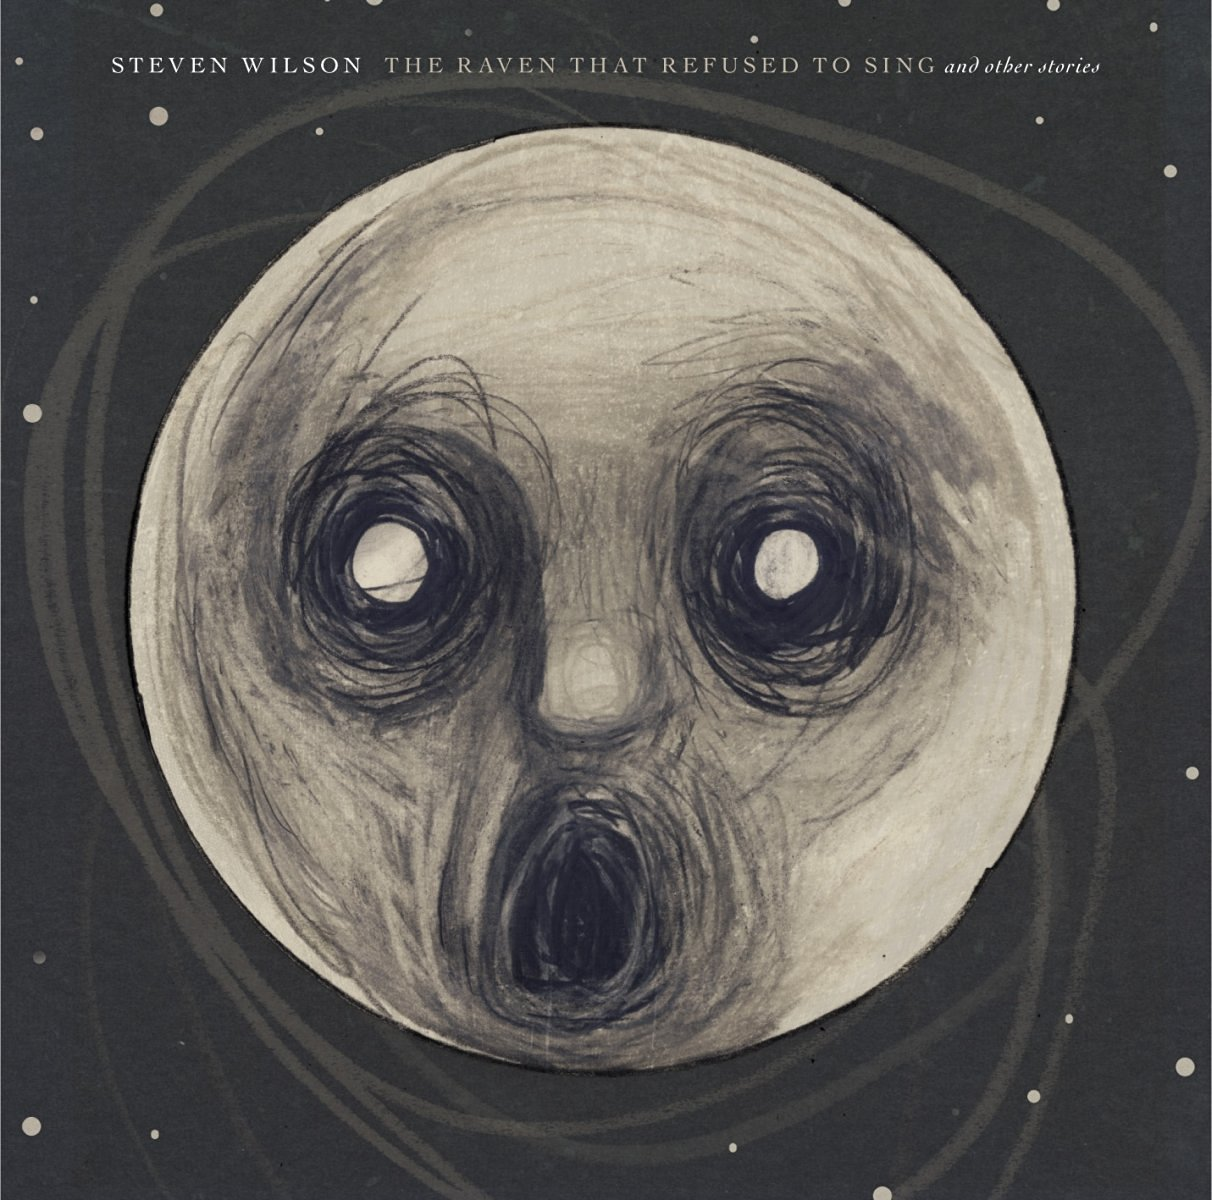 STEVEN WILSON - THE RAVEN THAT REFUSED TO SING (CD)